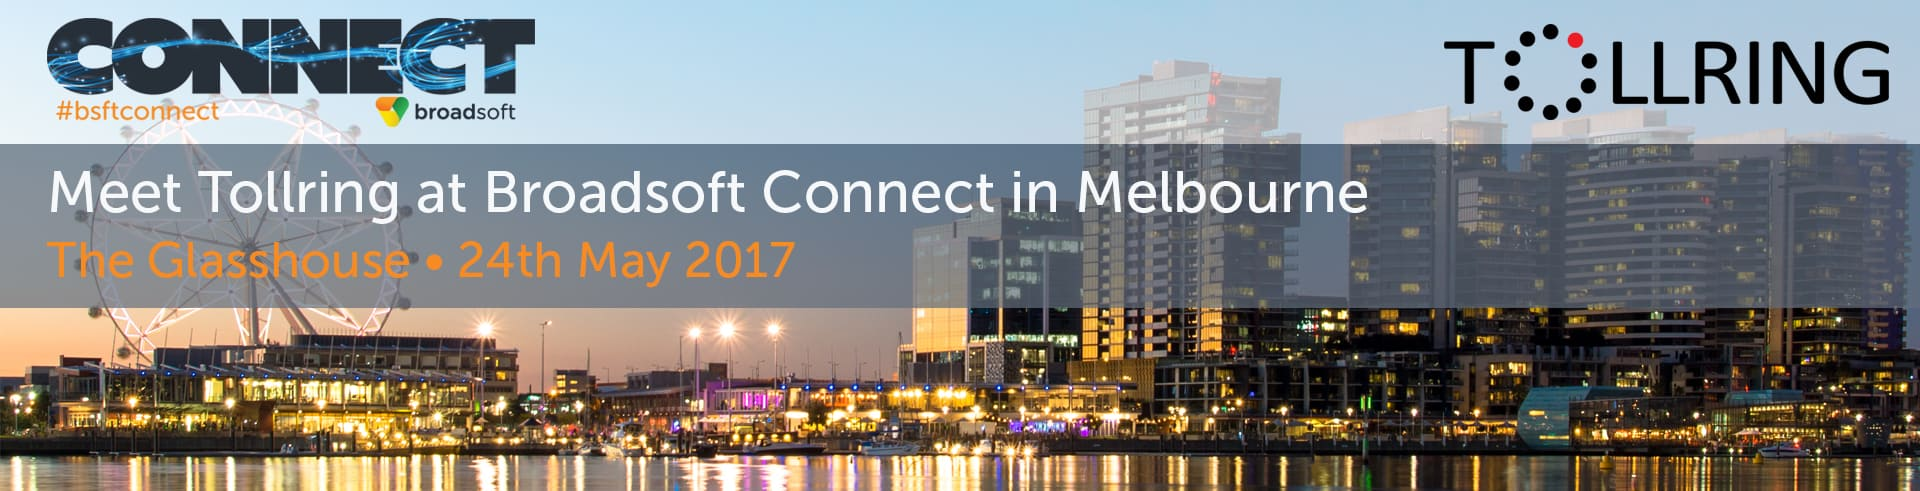 Join Tollring at Broadsoft Connect in Melbourne